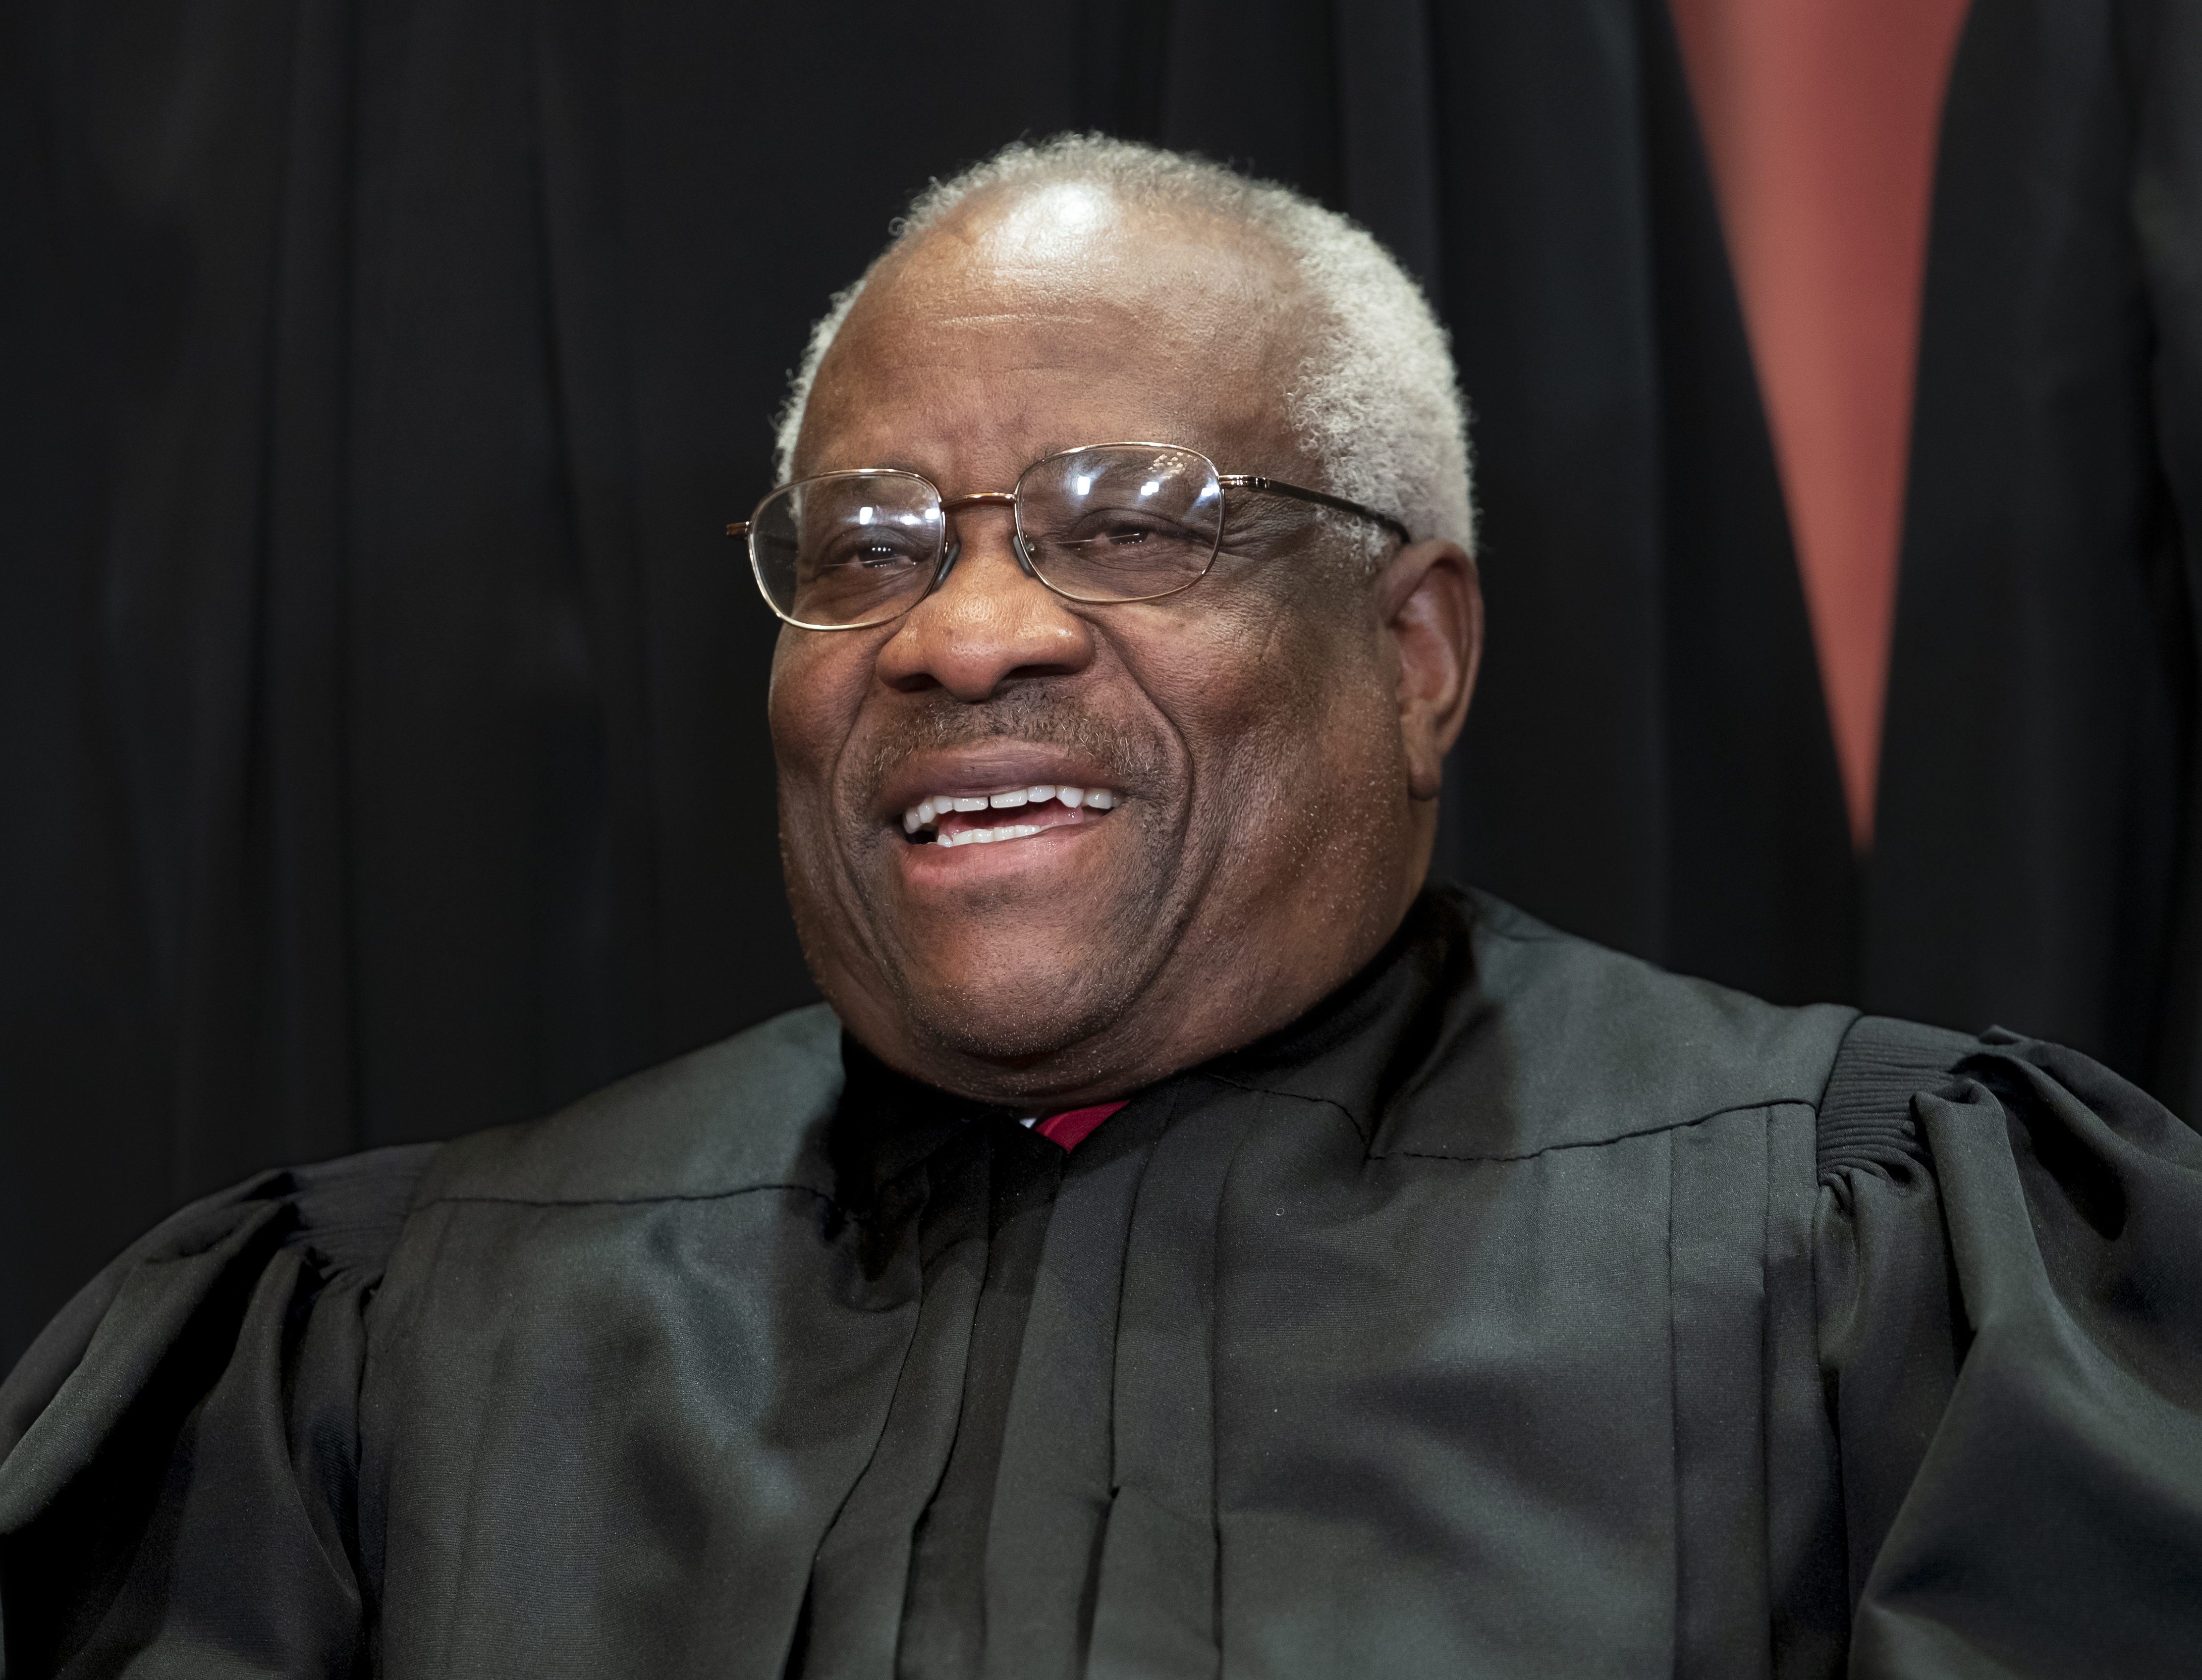 Associate Justice Clarence Thomas sits with fellow Supreme Court justices for a group portrait at the Supreme Court Building in Washington on Nov. 30, 2018. Thomas spoke at a U.S. Supreme Court argument for the first time in three years on March 20, 2019.